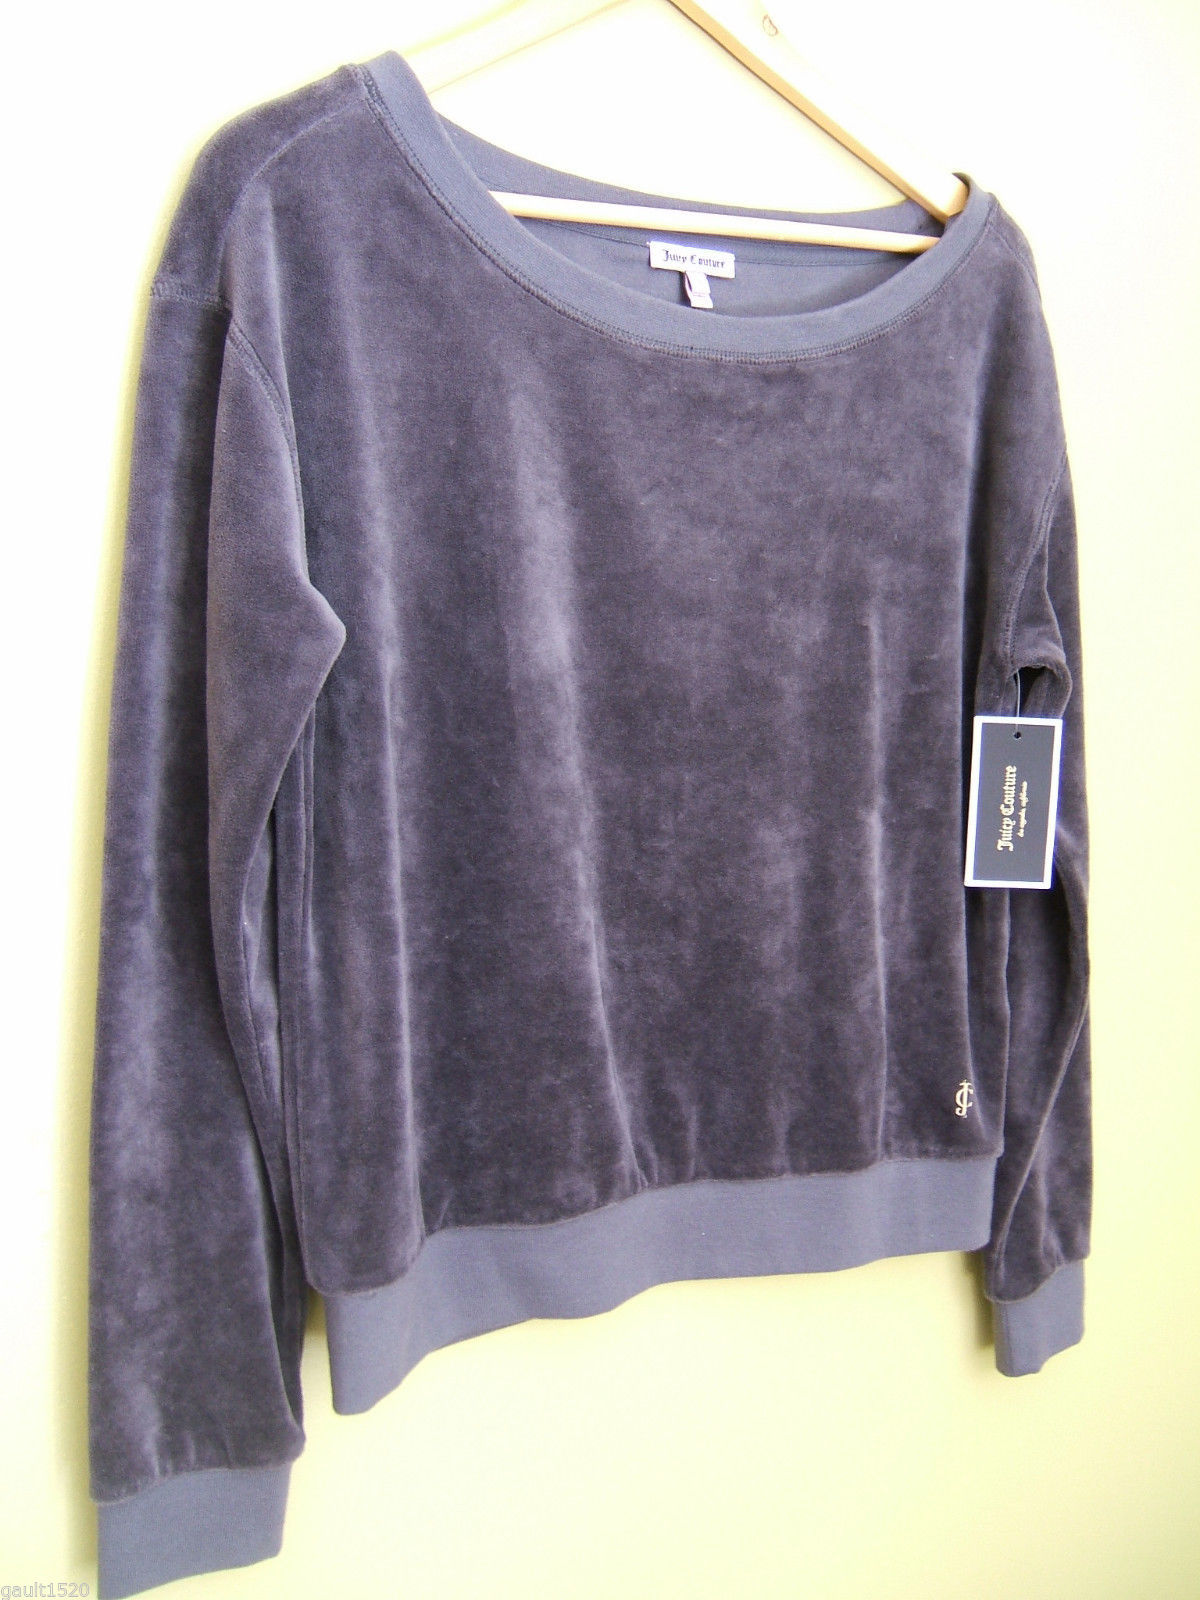 NWT Juicy Couture Sexy Gray Velour Top Hat Boatneck Pull Over Sweater Top S $98